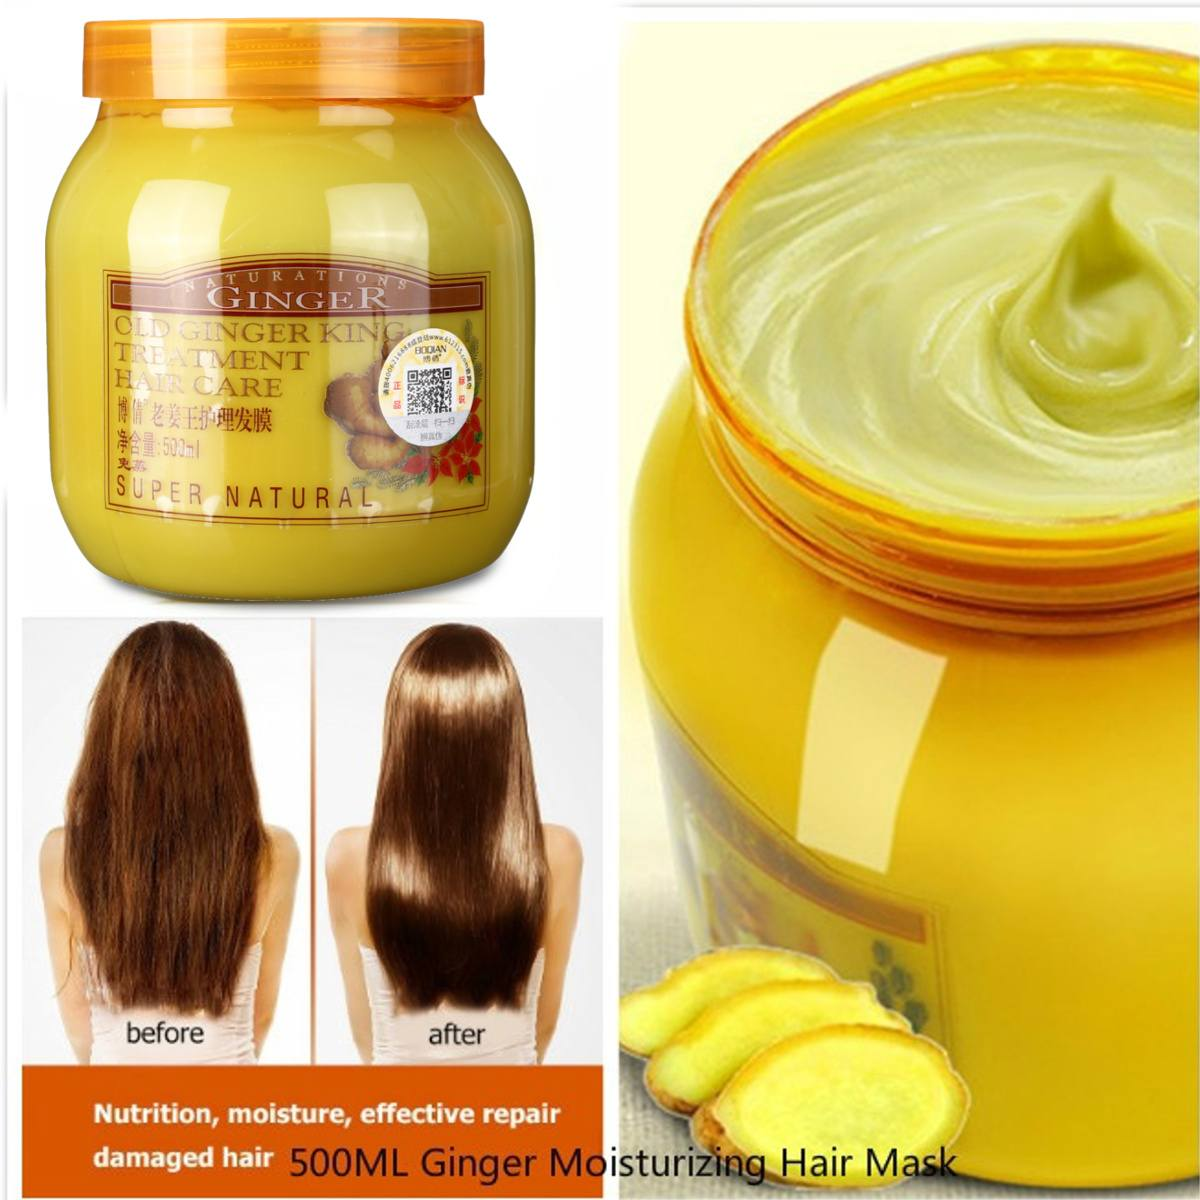 Ginger Moisturizing Hair Mask Damaged Repair Hair Care Treatment Cream Baked Ointment Hair Conditioner Dry Frizz 500ML image